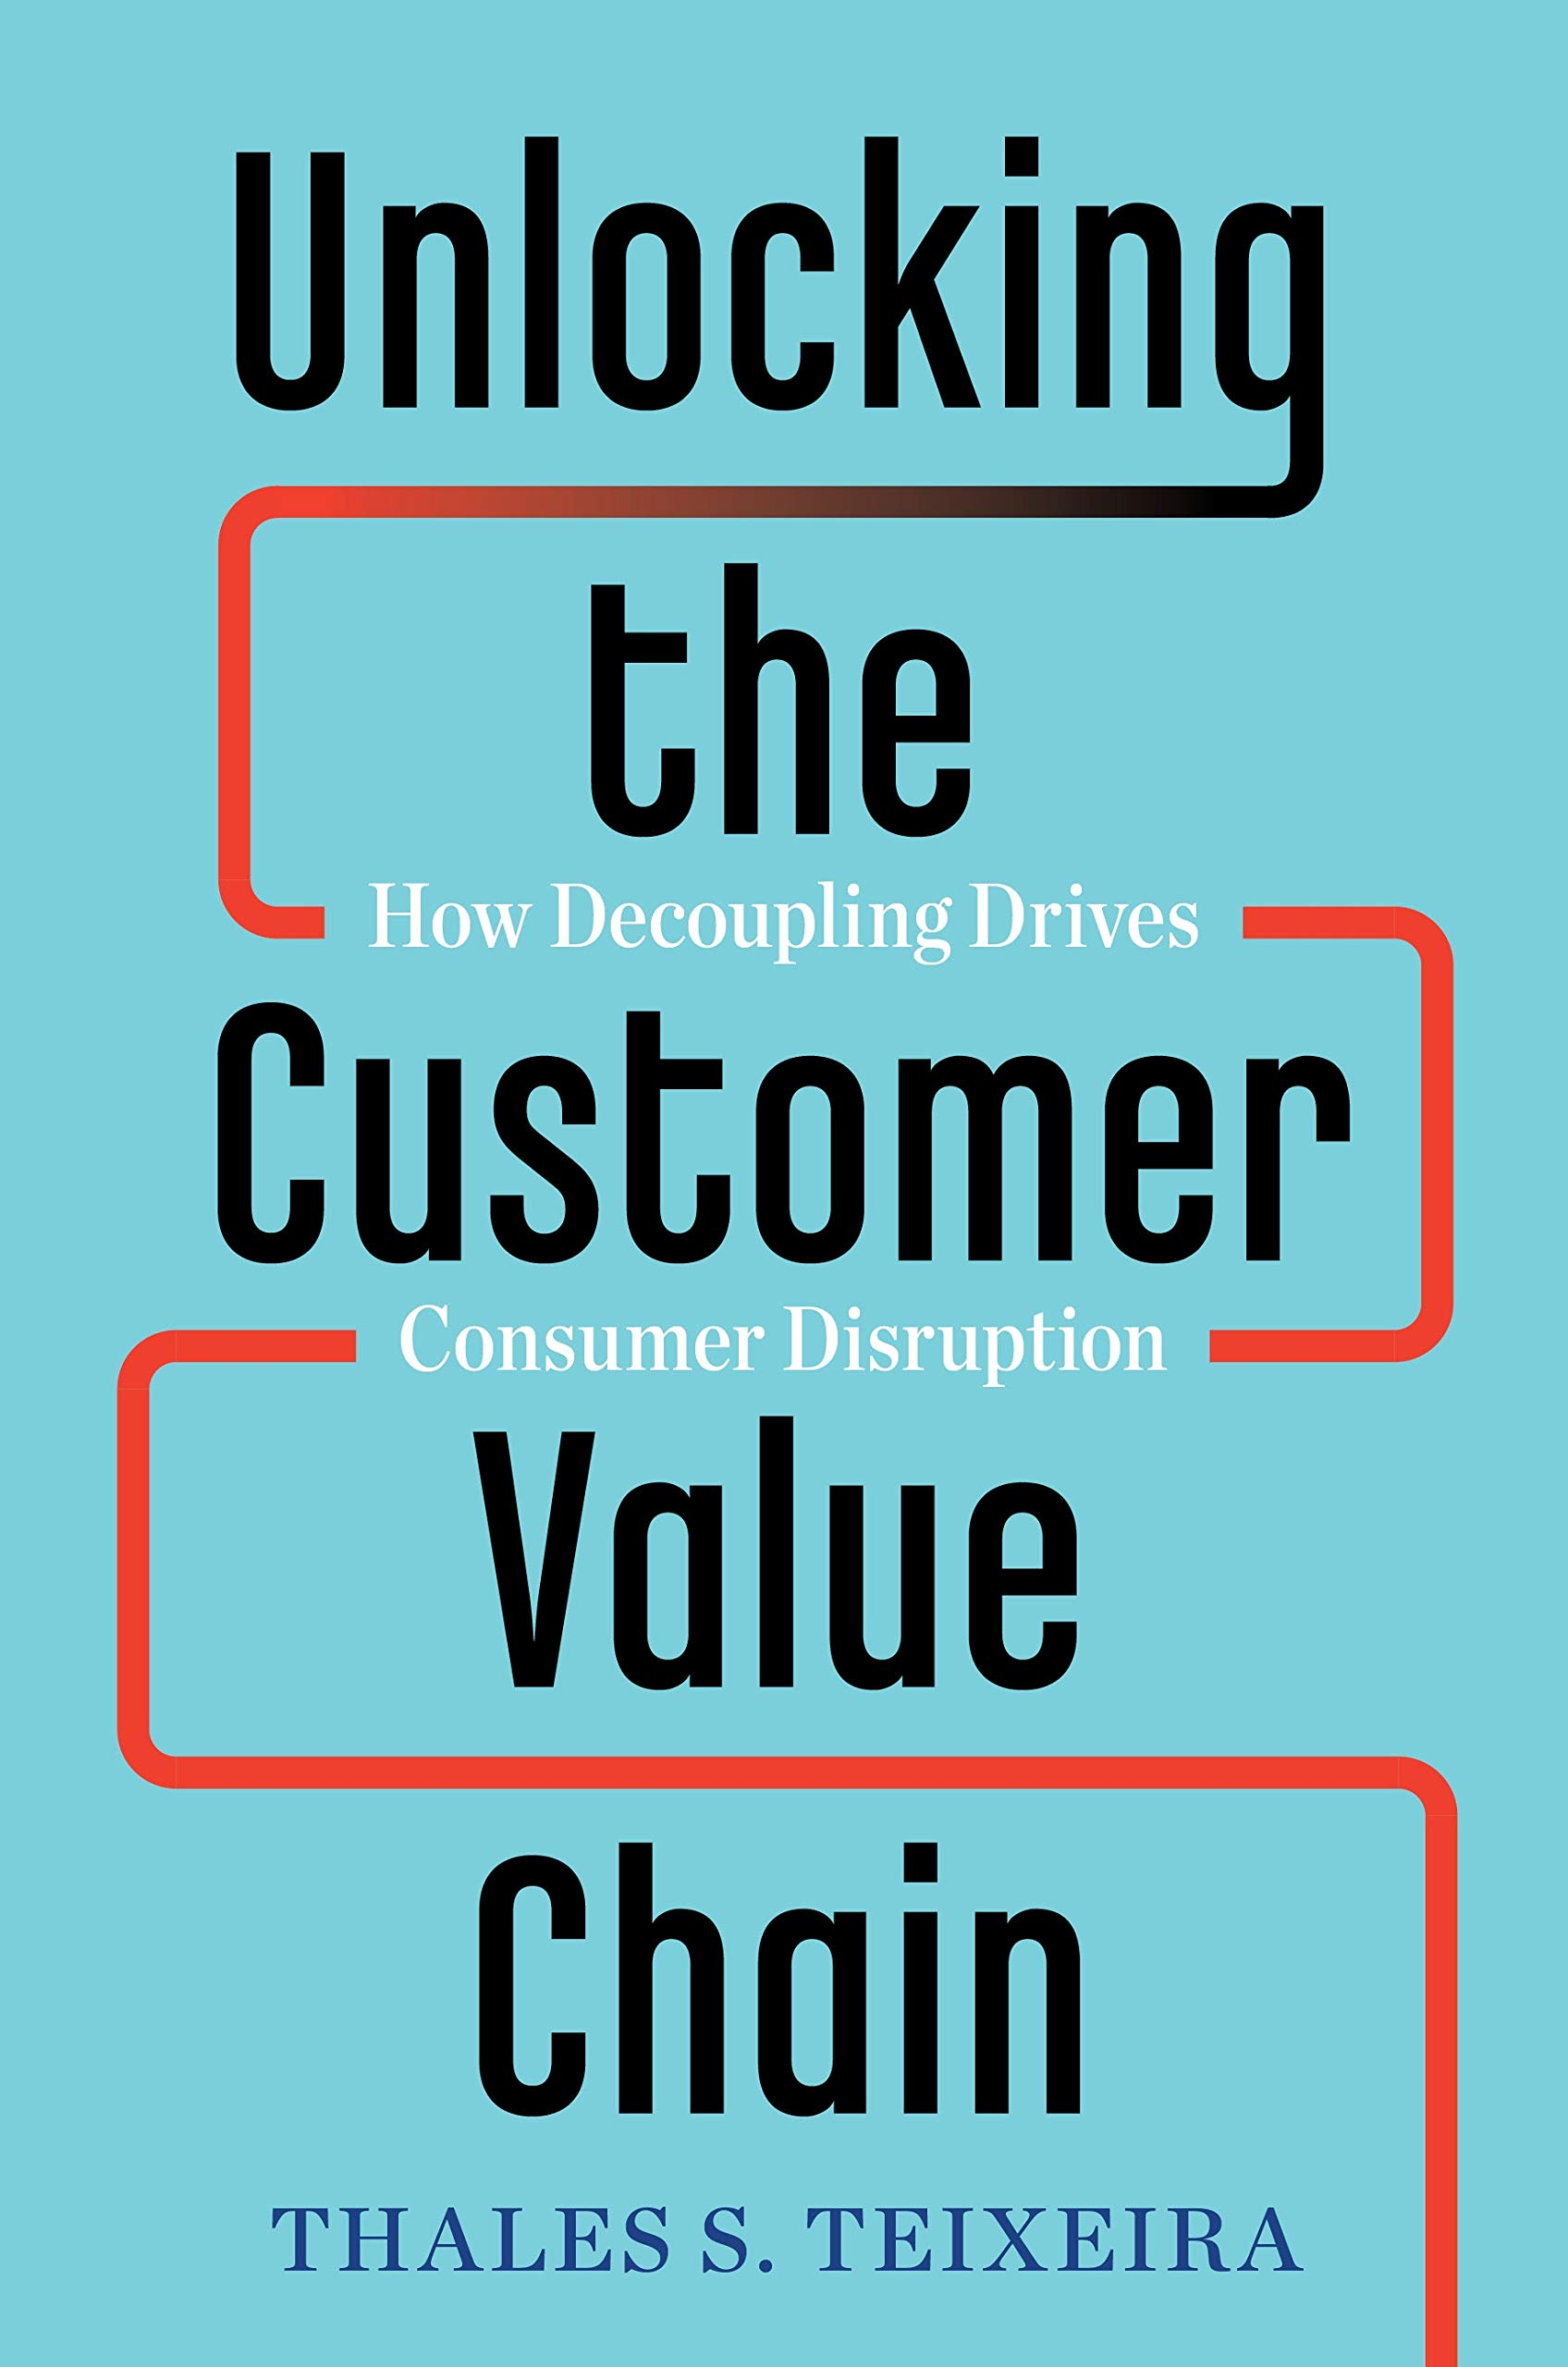 Image result for Unlocking the Customer Value Chain: How Decoupling Drives Consumer Disruption